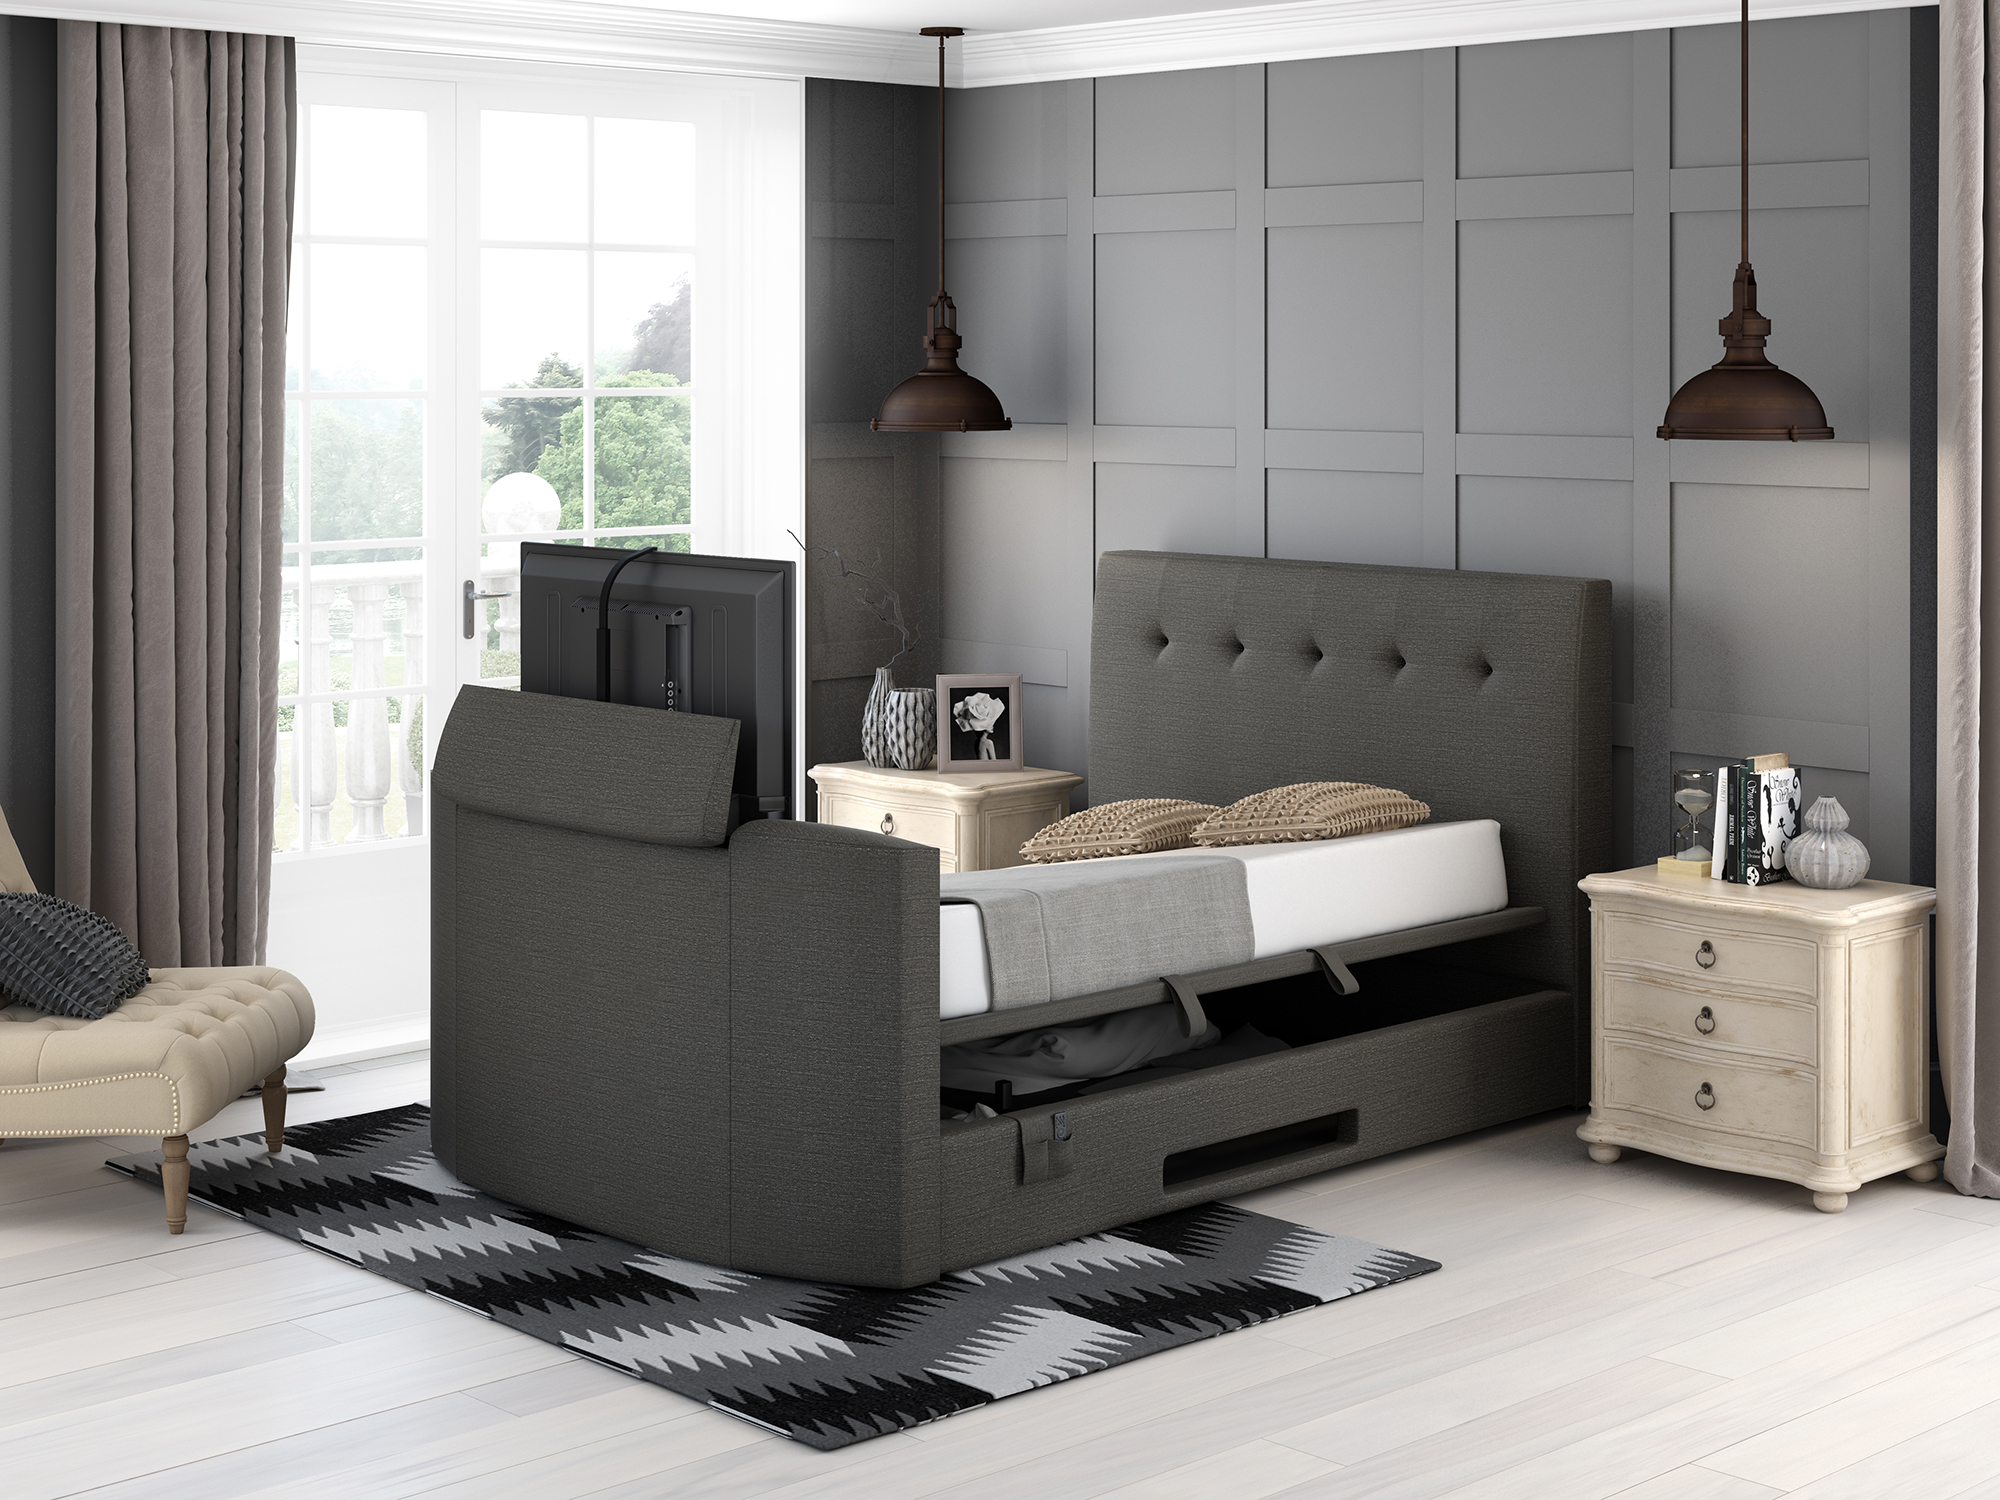 Bensons for Beds // 20% off all TV beds - PROMO CODE: No code required>> Shop at Bensons for Beds